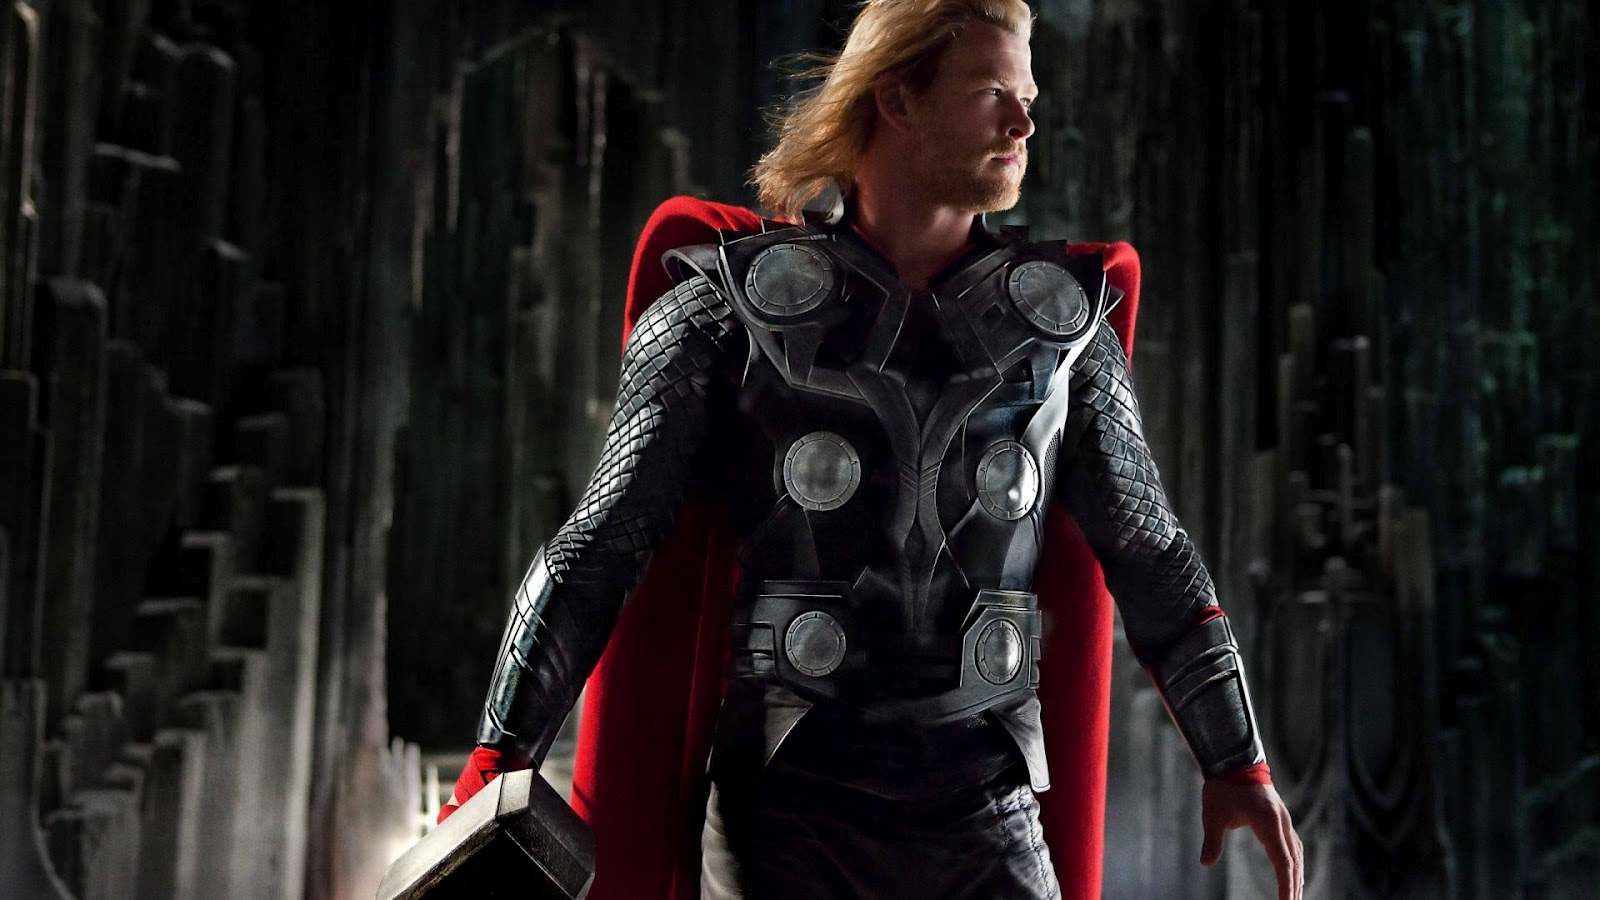 http://1.bp.blogspot.com/-6JJ8aZOmsYc/UBHm1_wEn3I/AAAAAAAACdQ/t6g2LmHdiEQ/s1600/chris-hemsworth-as-thor-in-thor-movie-1080x1920.jpg